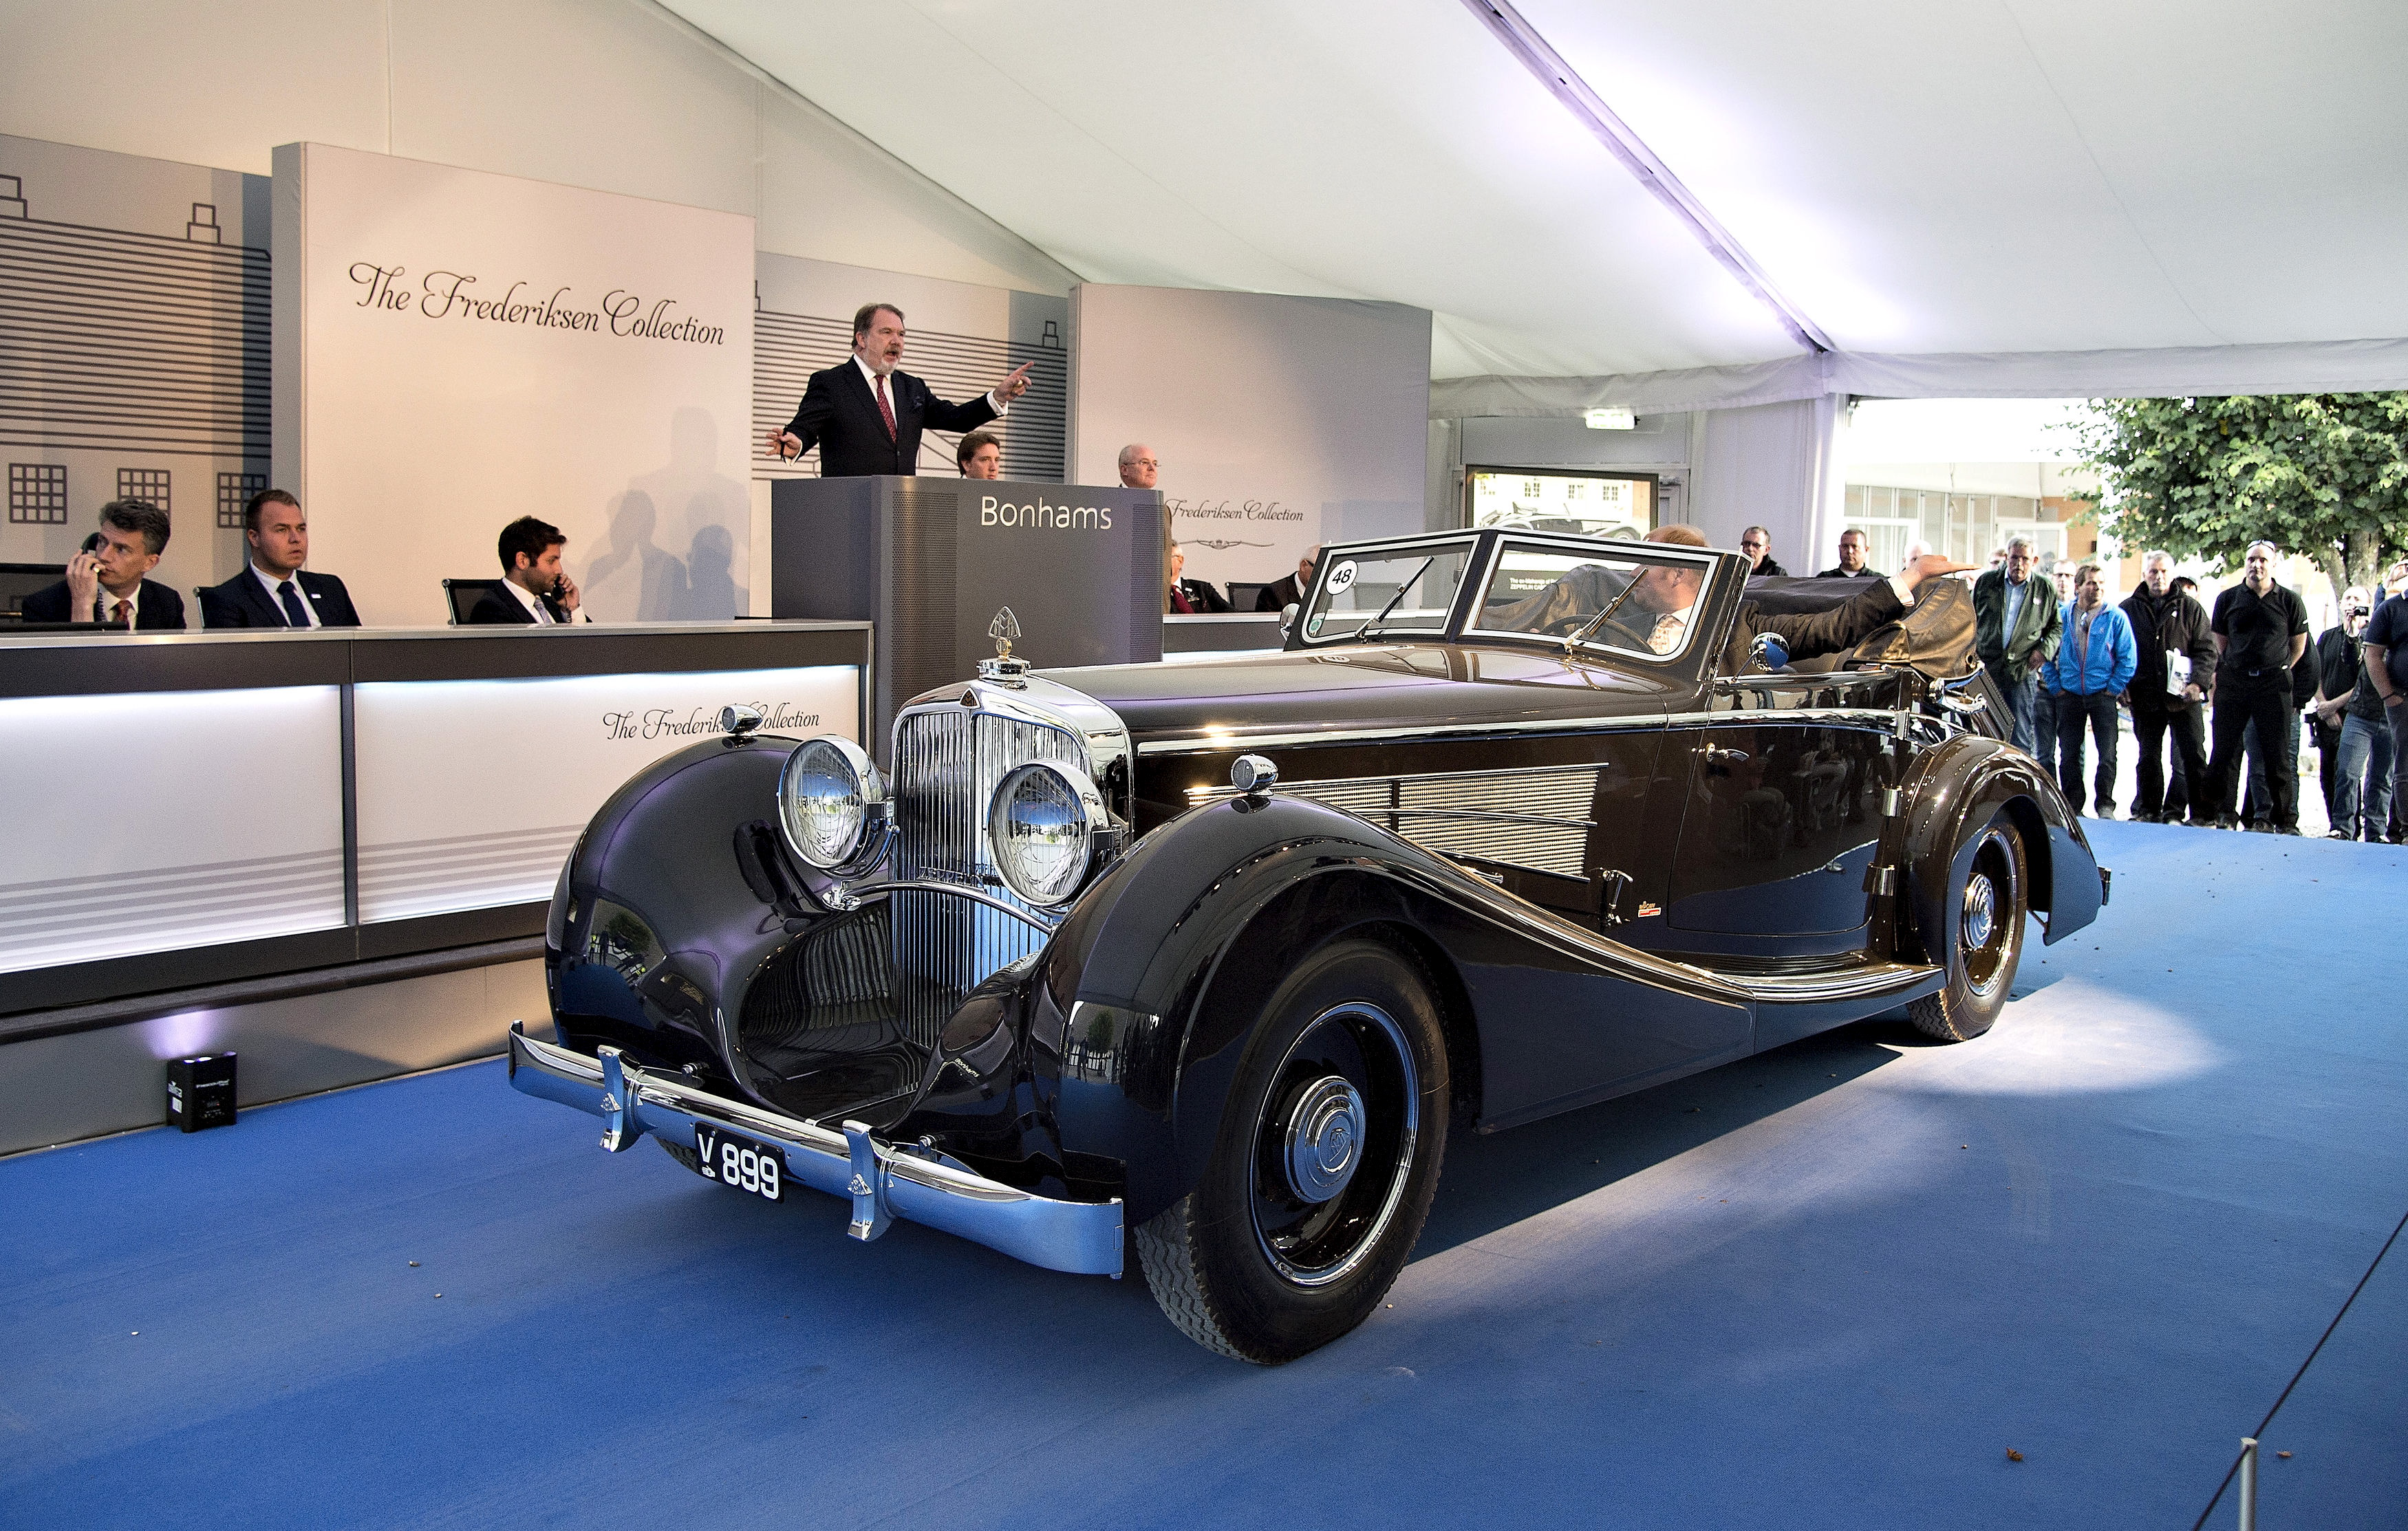 People look at an antique car from the Frederiksen Collection which are up for auction through the British auction house Bonhams, at Mr. Frederiksens manor in Mols Bjerge national park, eastern Jutland, Denmark September 26, 2015. The single-owned collection consists of 48 rare and iconic motor cars, all offered at the auction taking place at the home of owner Henrik Frederiksen. The sale features predominantly pre-war motor cars, built by some of the worlds most exclusive manufacturers, including Rolls-Royce, Bentley, Mercedes-Benz, Lagonda and Maybach. ATTENTION EDITORS - THIS IMAGE WAS PROVIDED BY A THIRD PARTY. FOR EDITORIAL USE ONLY. NOT FOR SALE FOR MARKETING OR ADVERTISING CAMPAIGNS. THIS PICTURE IS DISTRIBUTED EXACTLY AS RECEIVED BY REUTERS, AS A SERVICE TO CLIENTS. DENMARK OUT. NO COMMERCIAL OR EDITORIAL SALES IN DENMARK. NO COMMERCIAL SALES. - GF10000222116